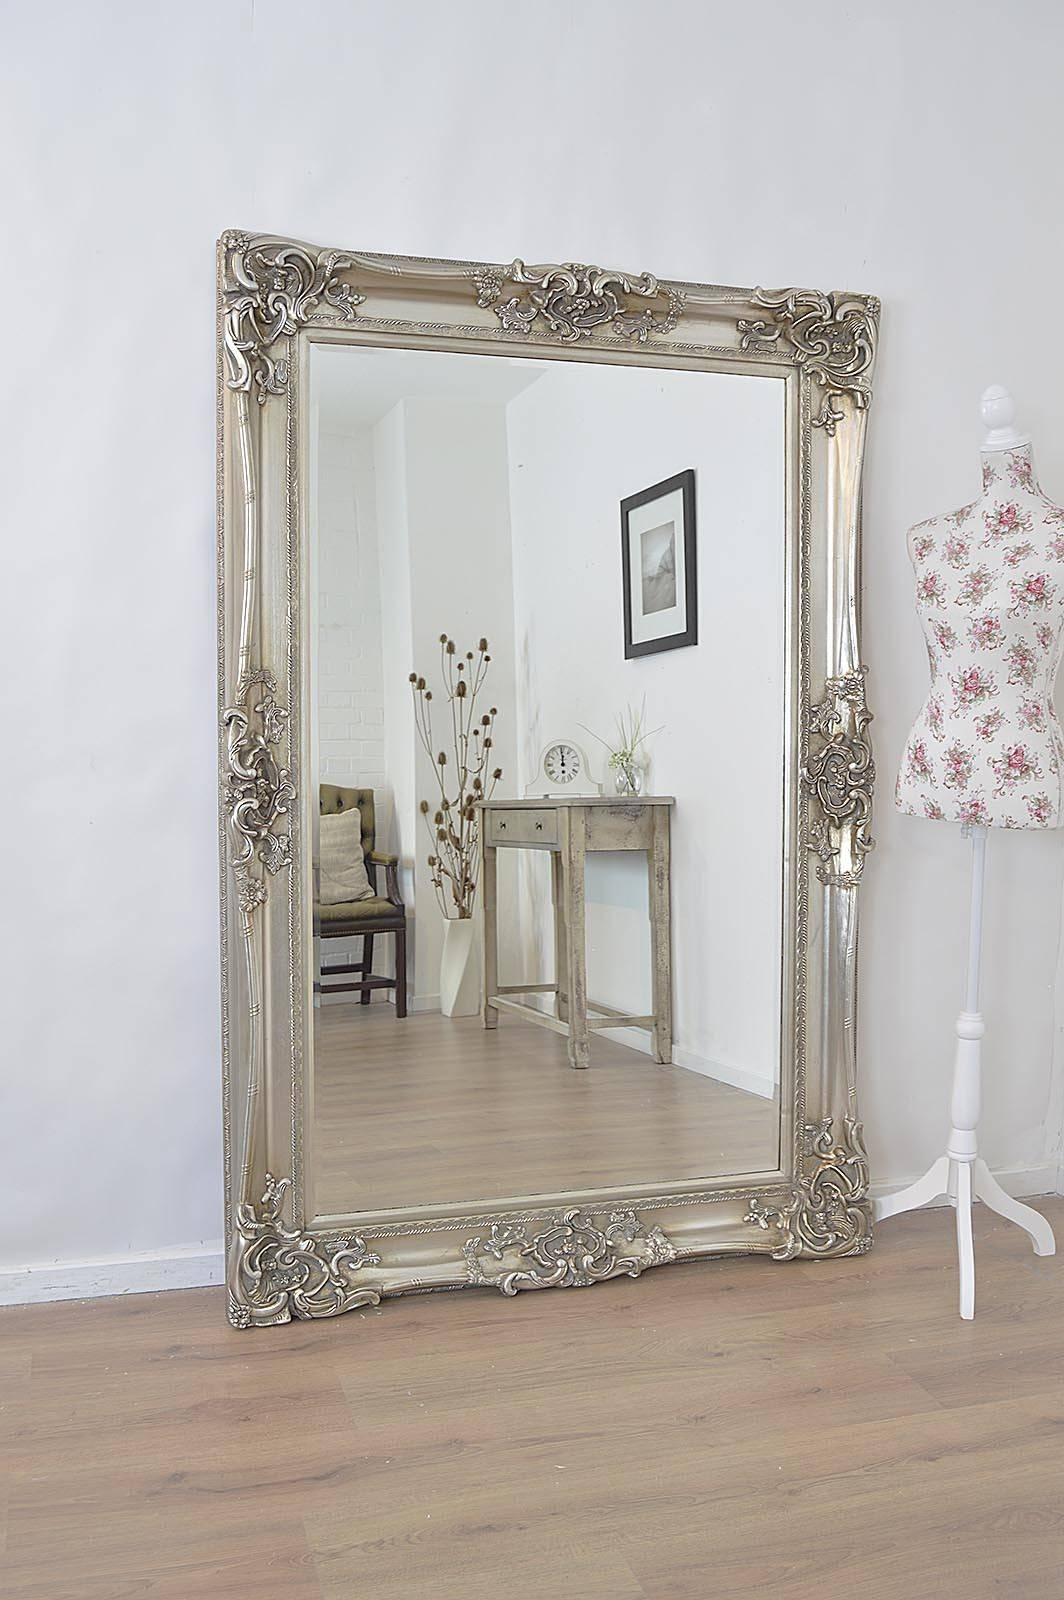 Large Antique Wall Mirror Ornate Frame Antique Ornate Wall Mirrors Intended For Large Ornate Mirrors (View 8 of 25)